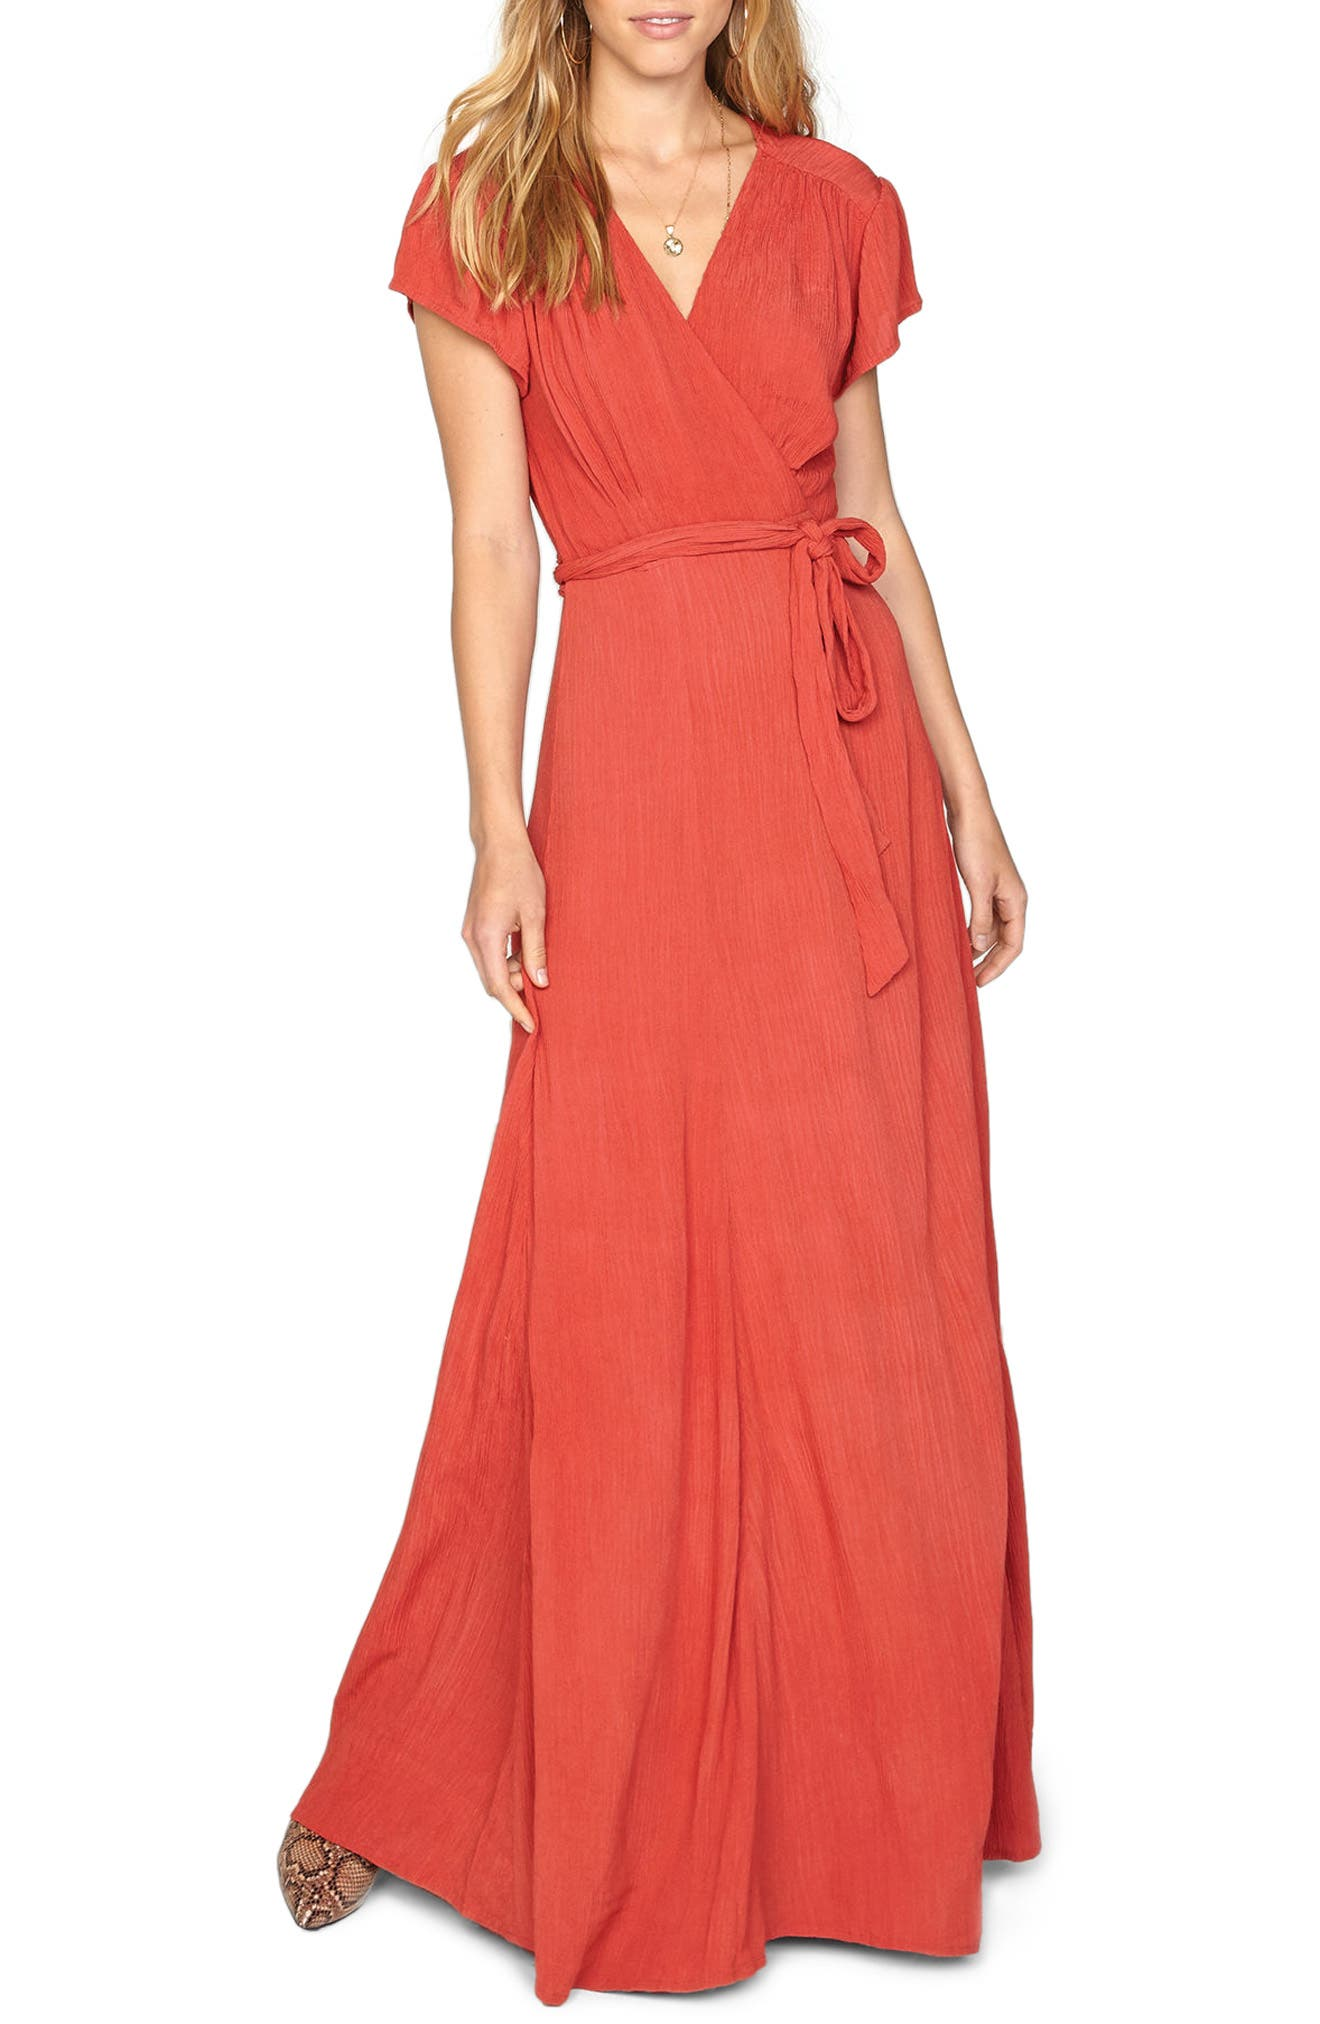 Beachscape Maxi Wrap Dress,                         Main,                         color, Salsa Red